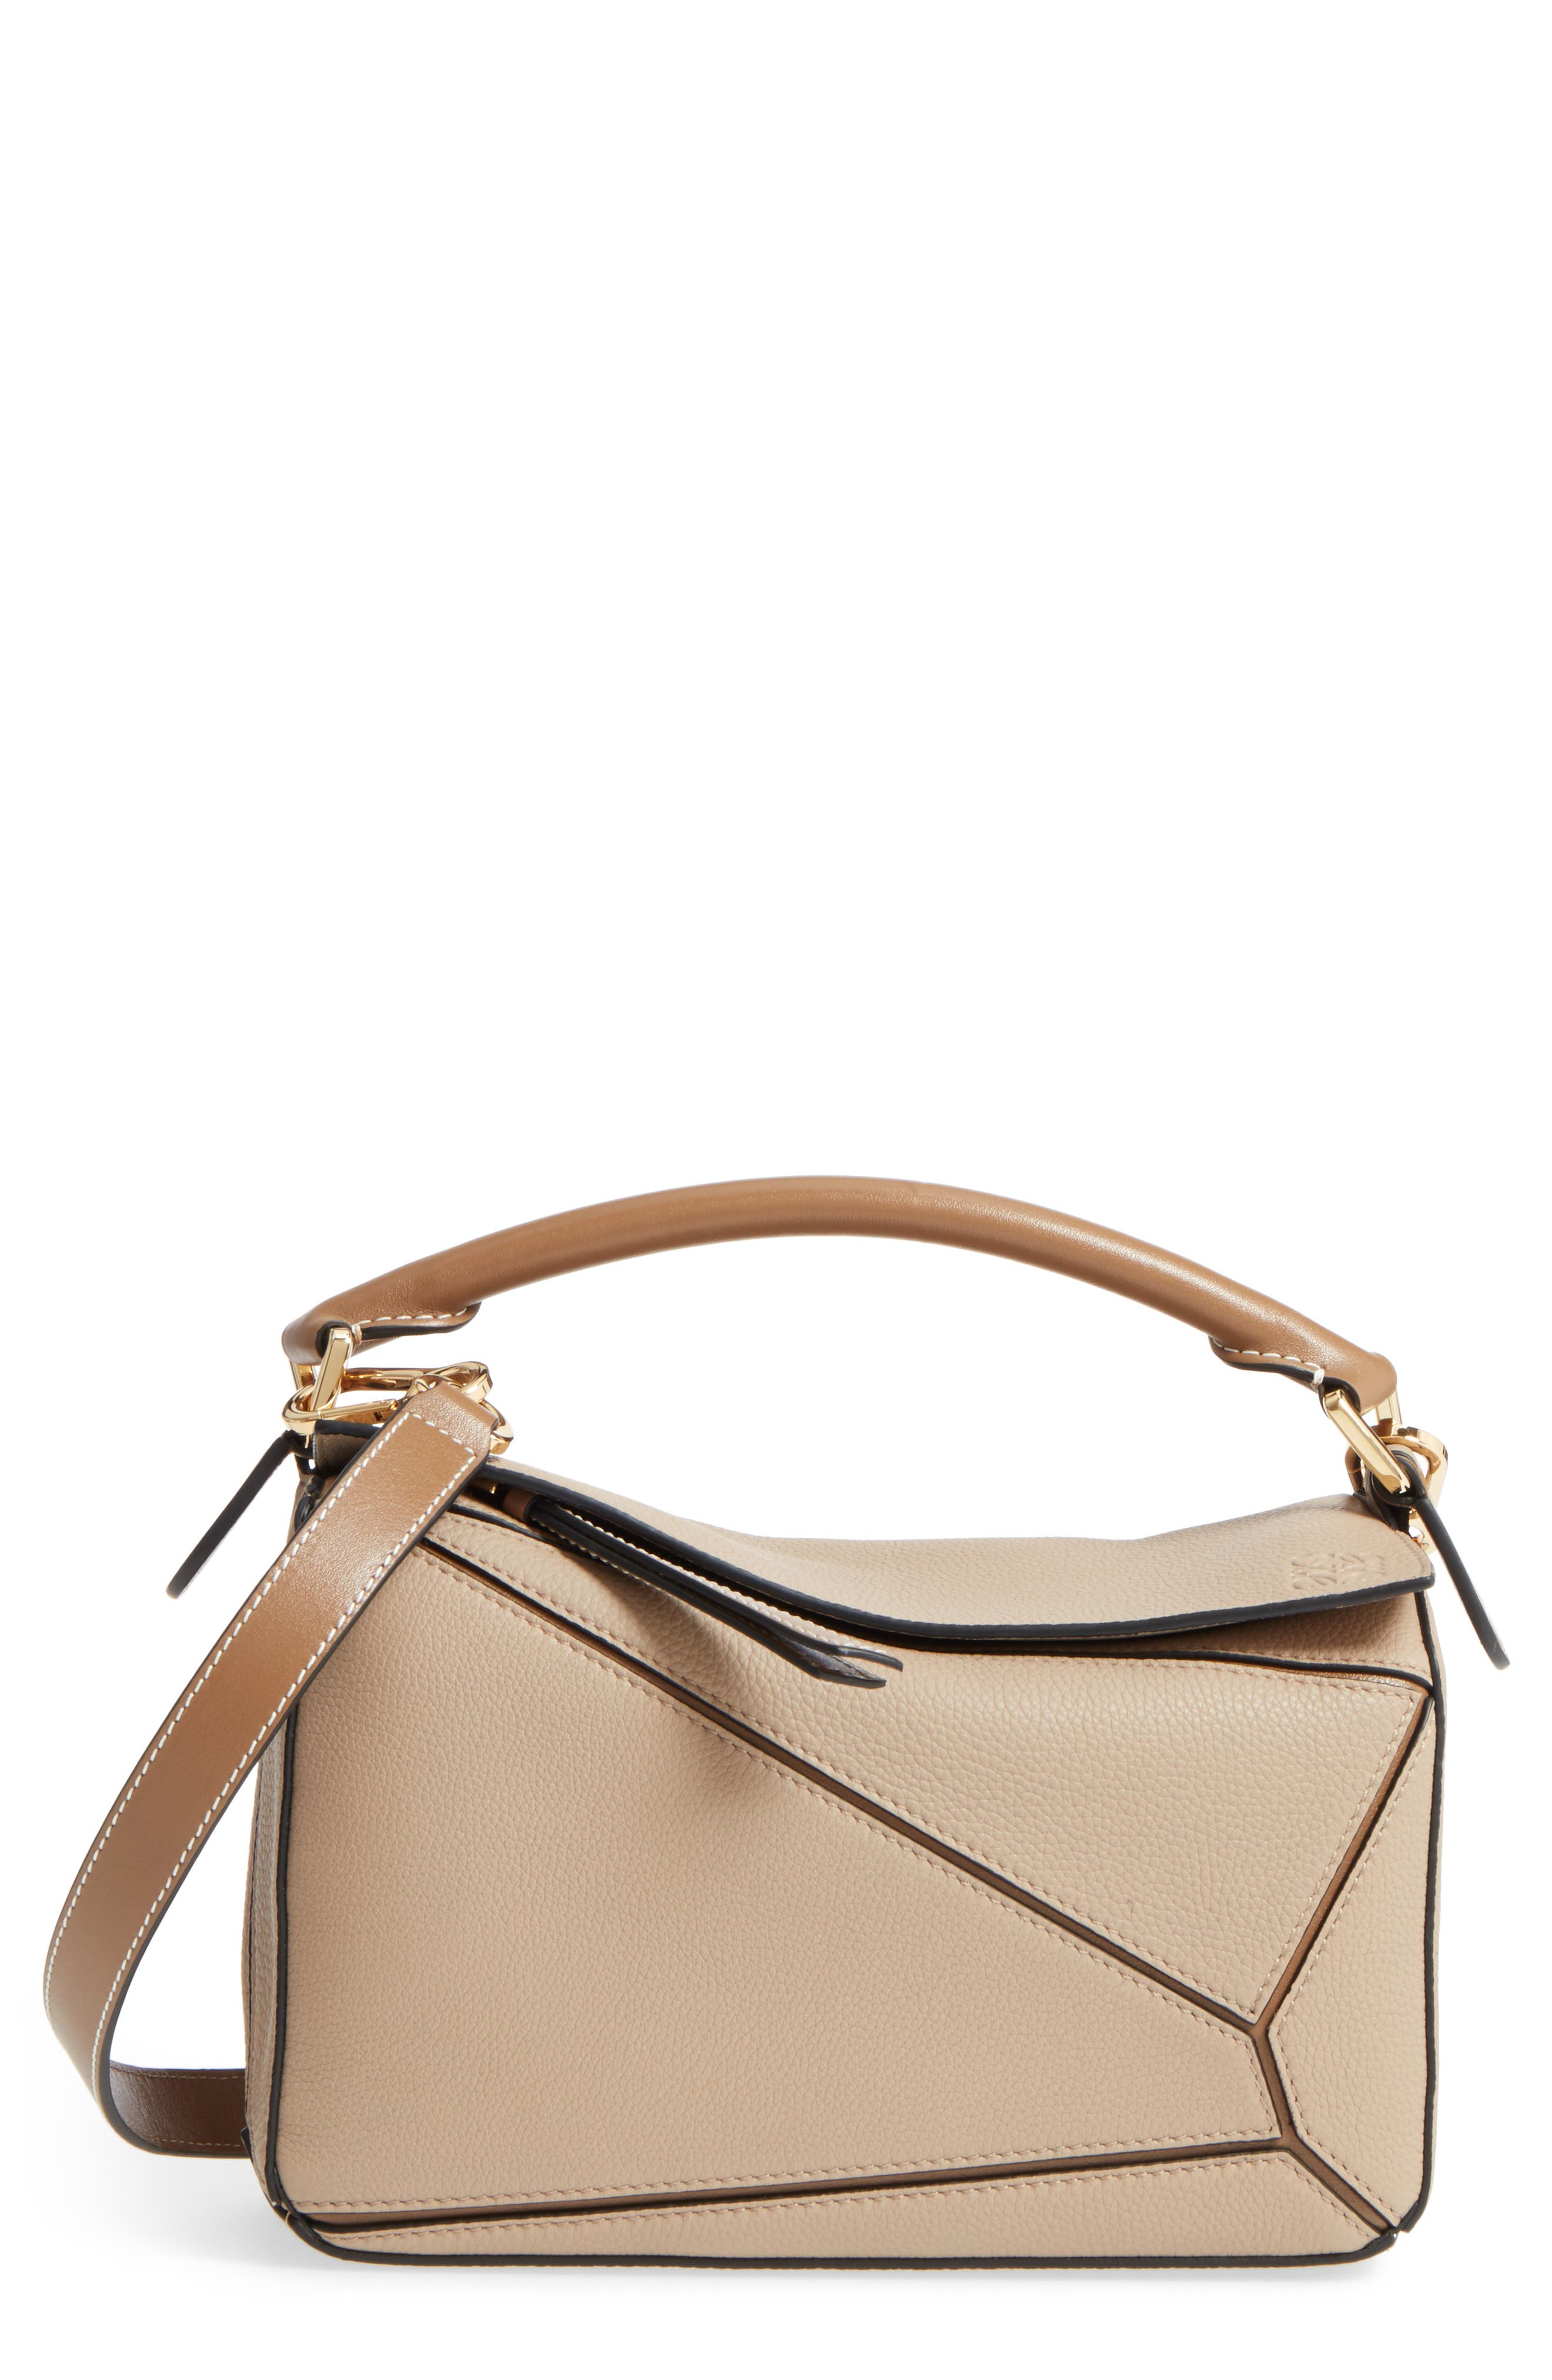 Small Puzzle Leather Bag,                         Main,                         color, Sand/ Mink